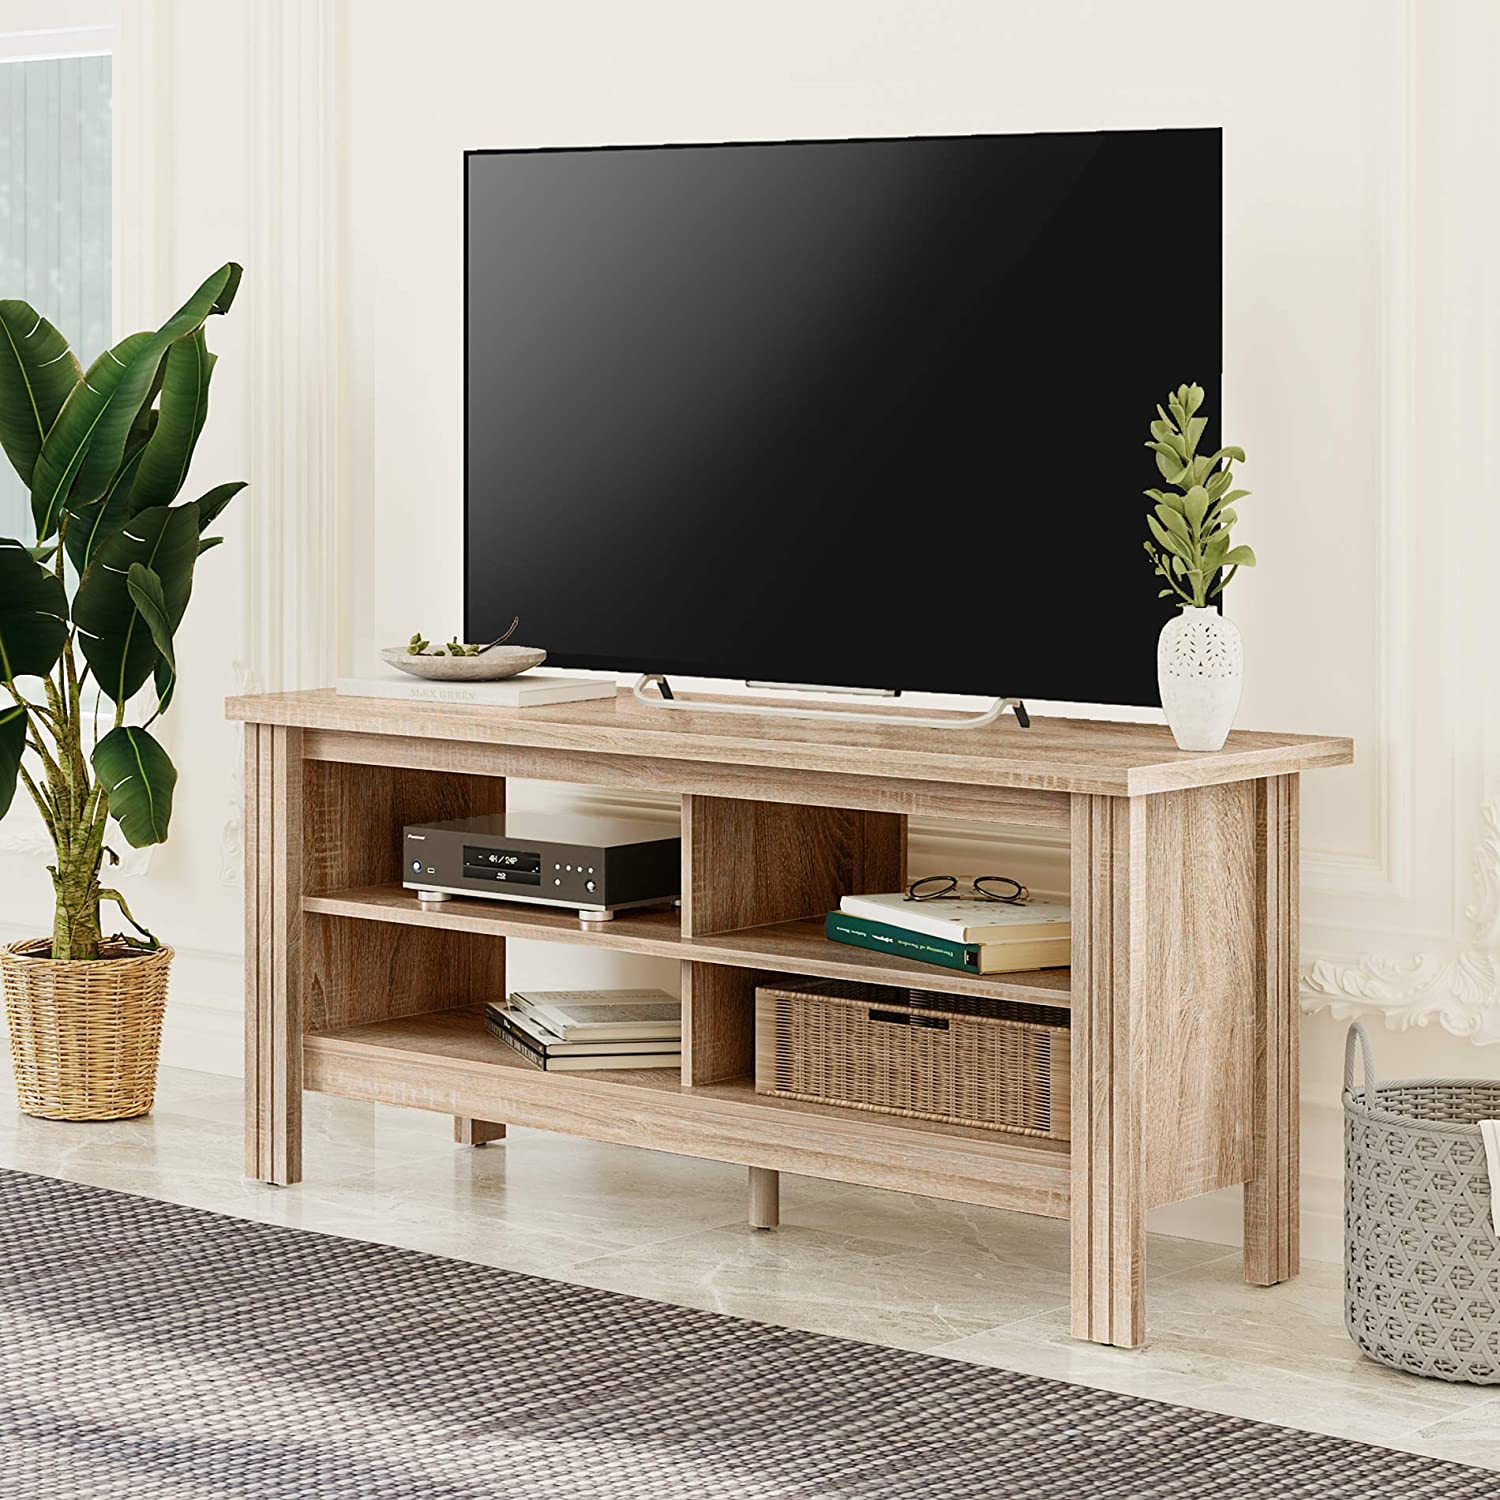 Wampat Tv Stands For 55 Inch Tv Entertainment Center Wood Media Console Storage Cabinet For Bedroom And Living Room White Oak 43 Inch Furniture Decor